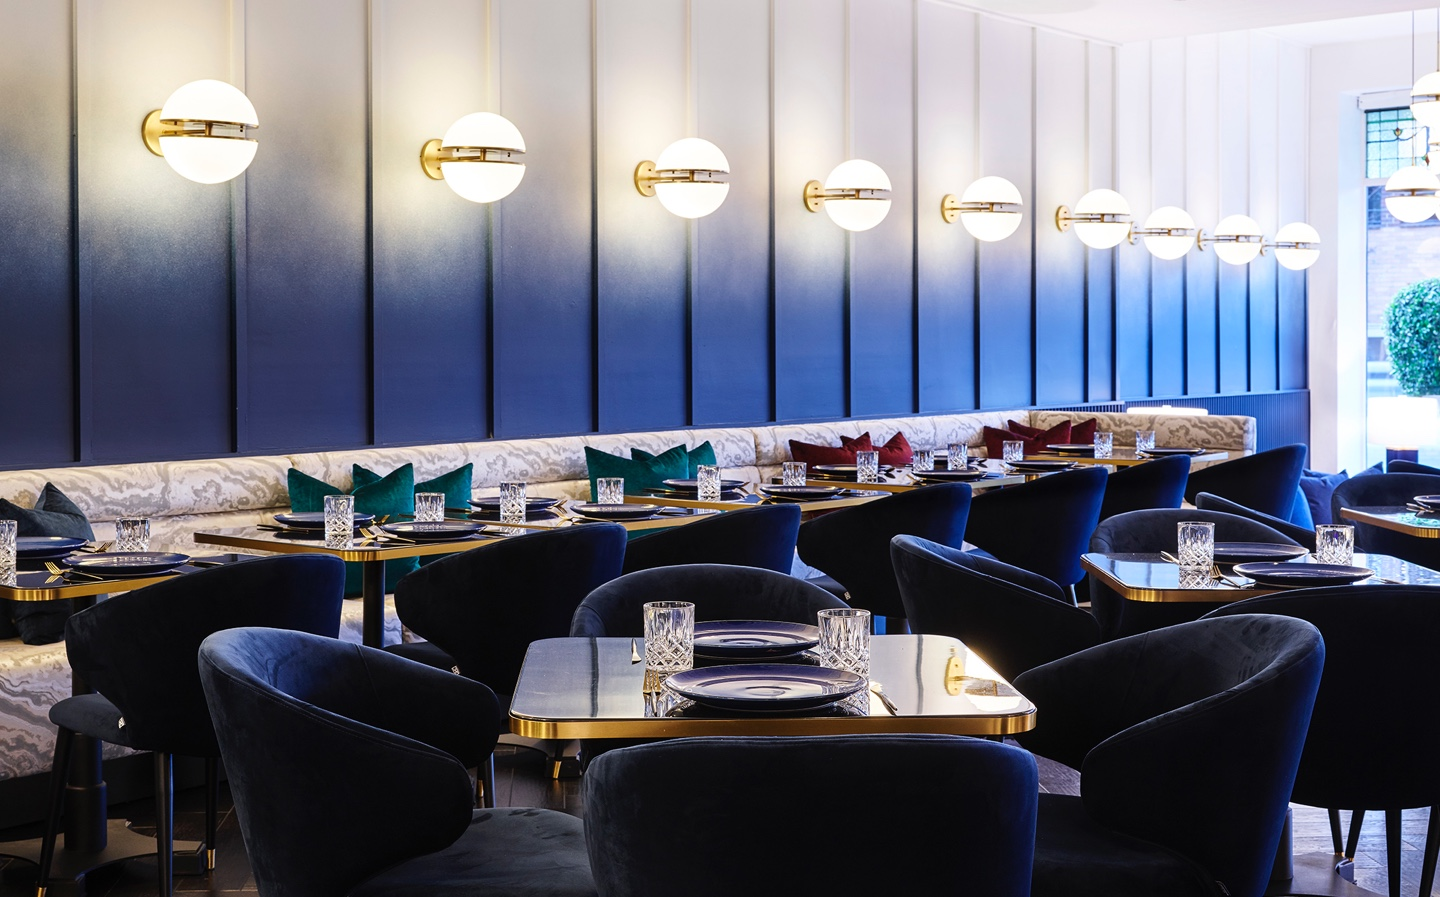 A wide shot of the le plonc blue ombre wall in the dining area designed by Greg Natale